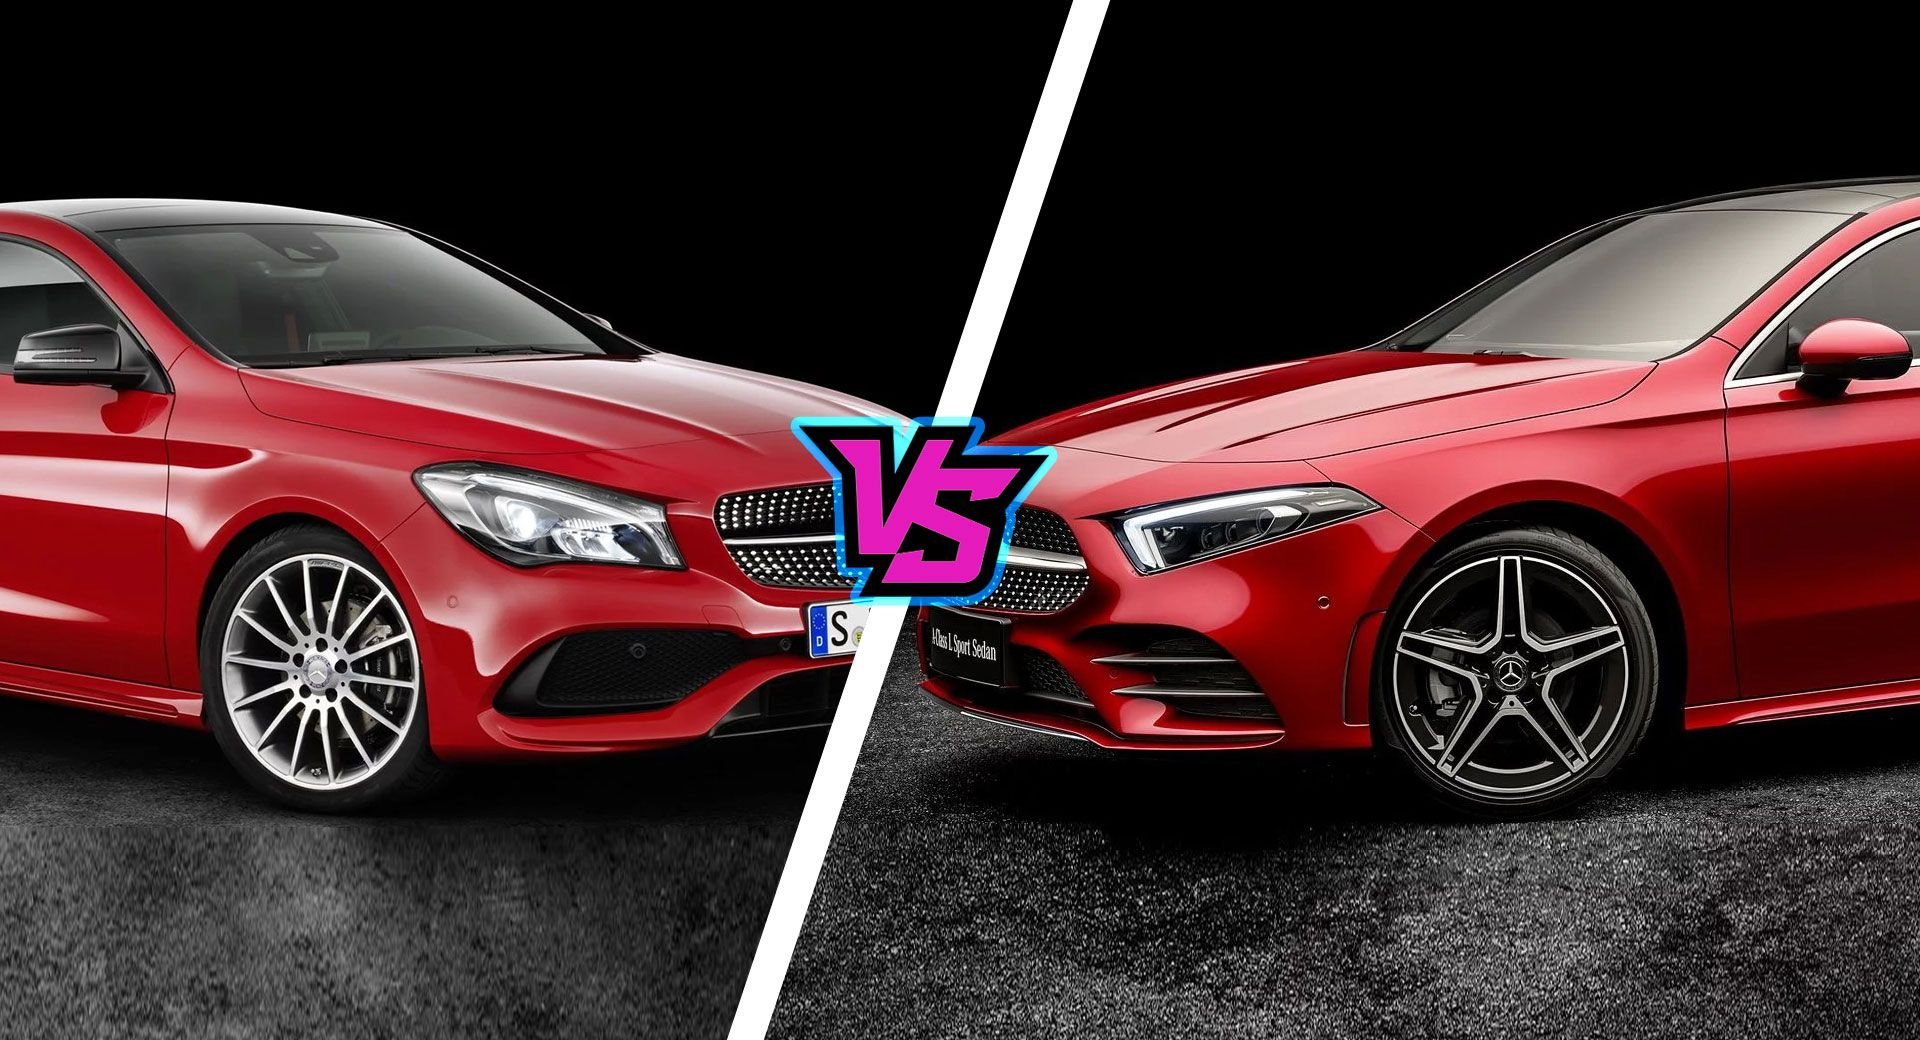 2019 mercedes a class sedan vs cla just how different are they carscoops. Black Bedroom Furniture Sets. Home Design Ideas